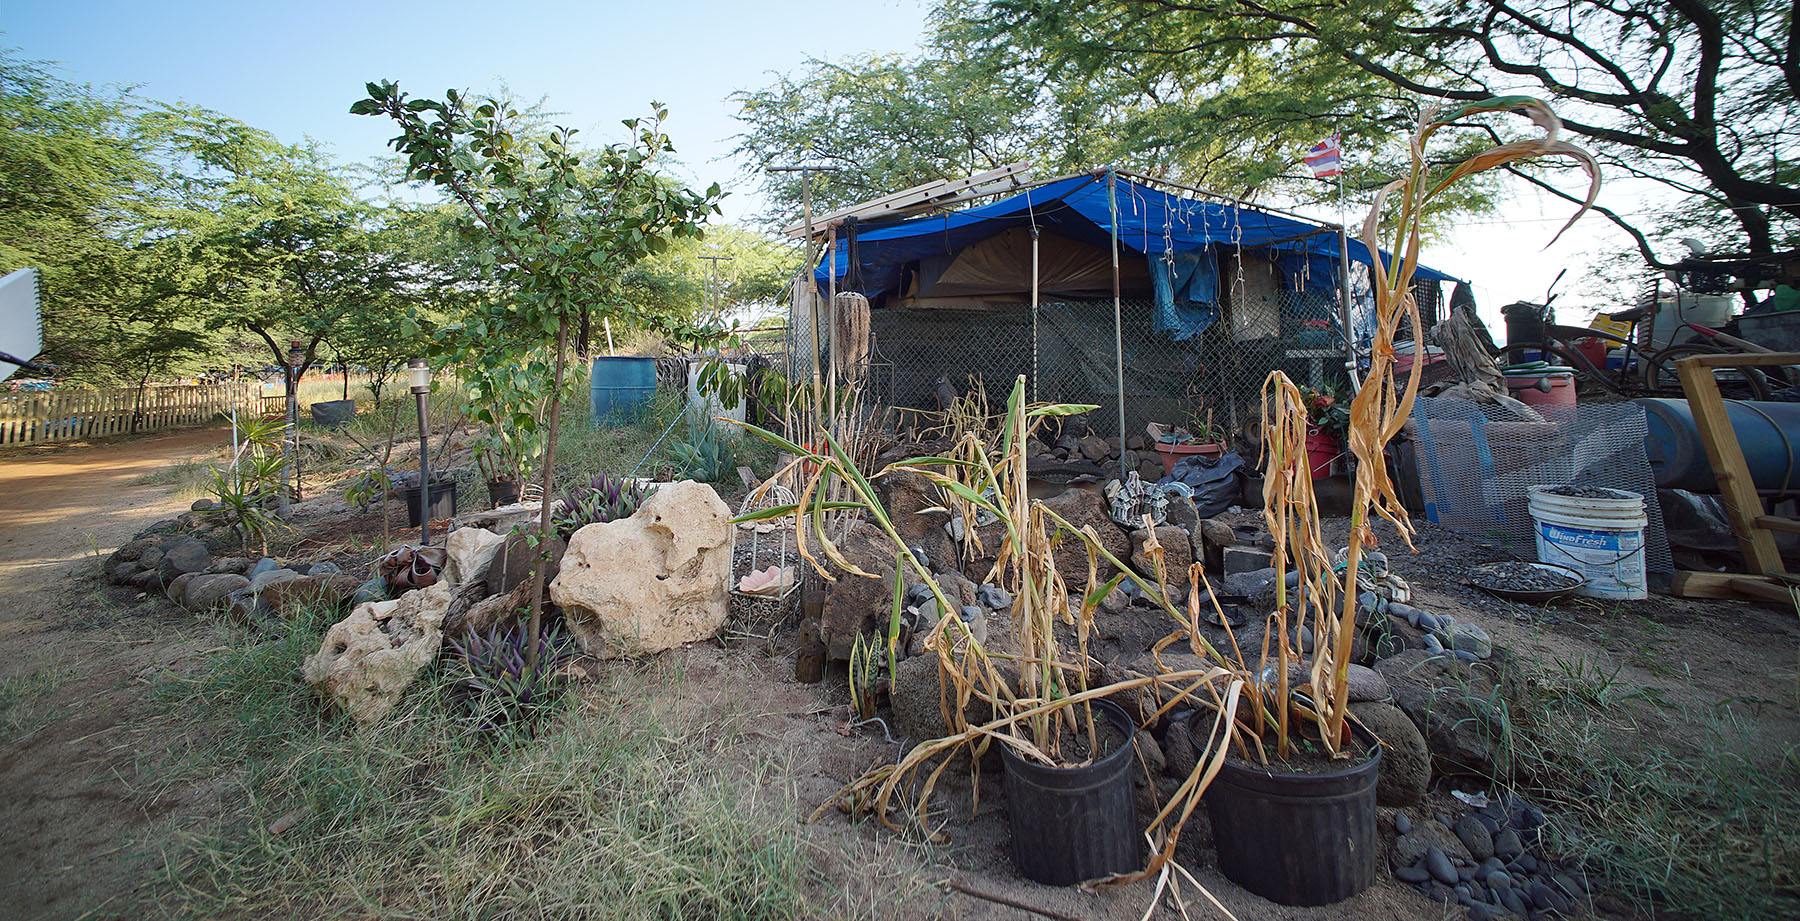 <p>Tita's structure is located close to the rocky shoreline. She used recycled materials to landscape both her front and backyard area.</p>